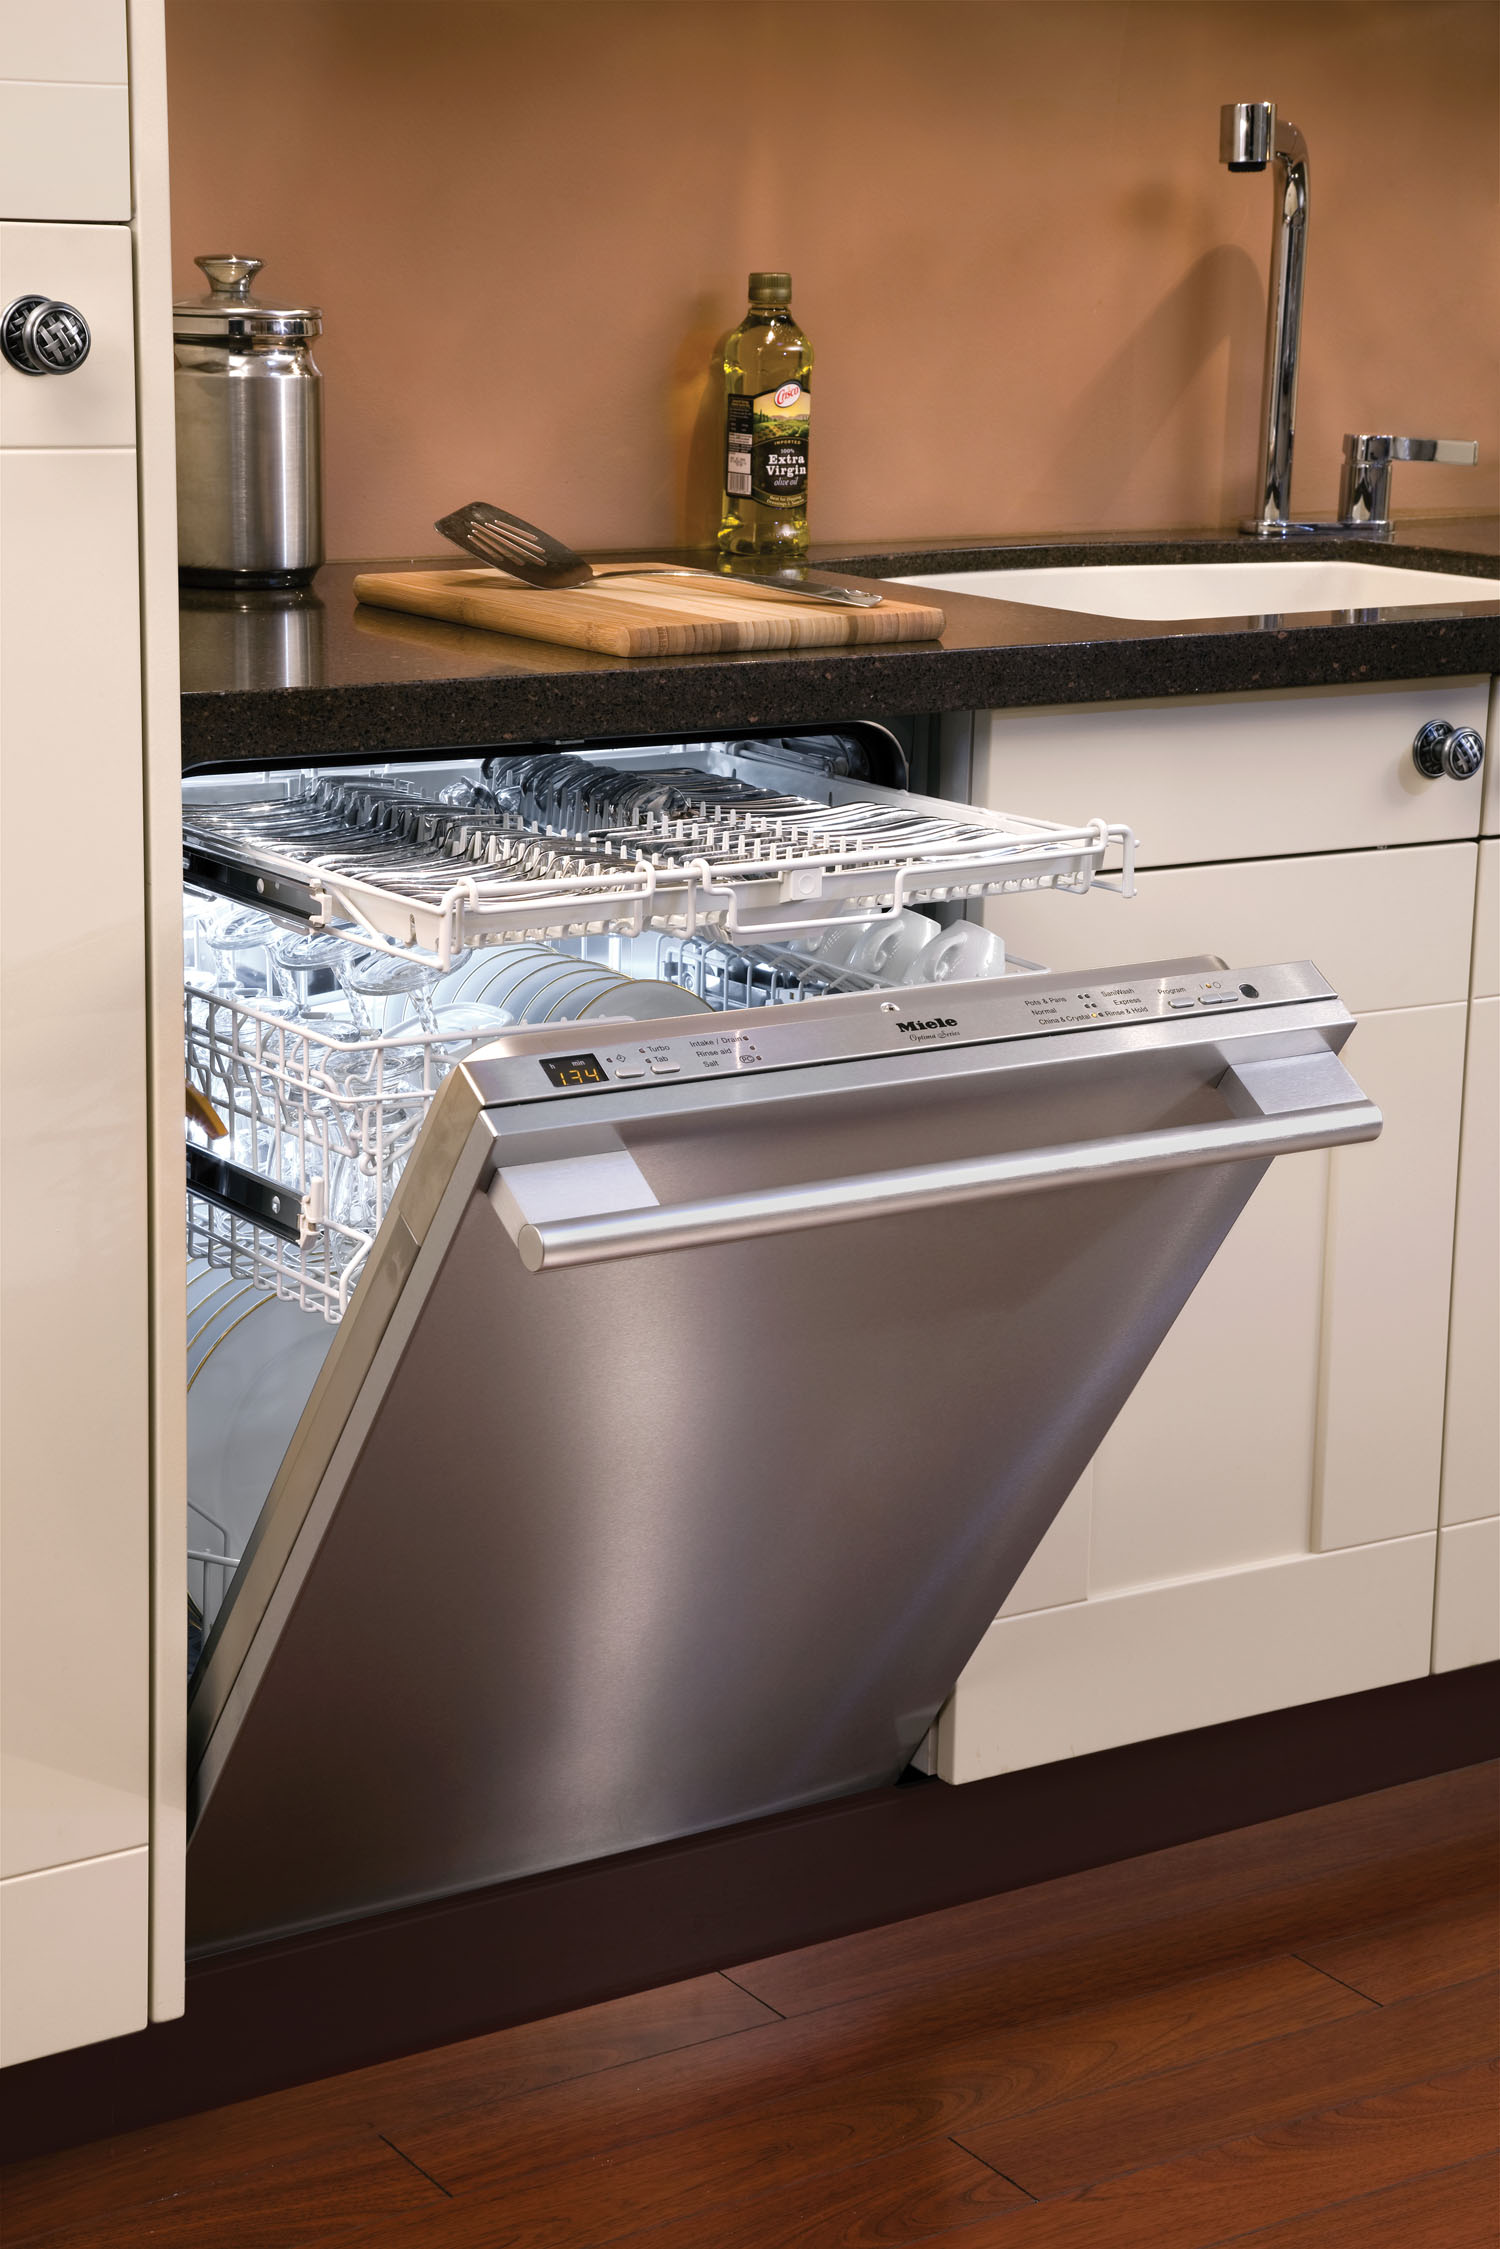 miele the quietest american dishwasher kitchenwarenews